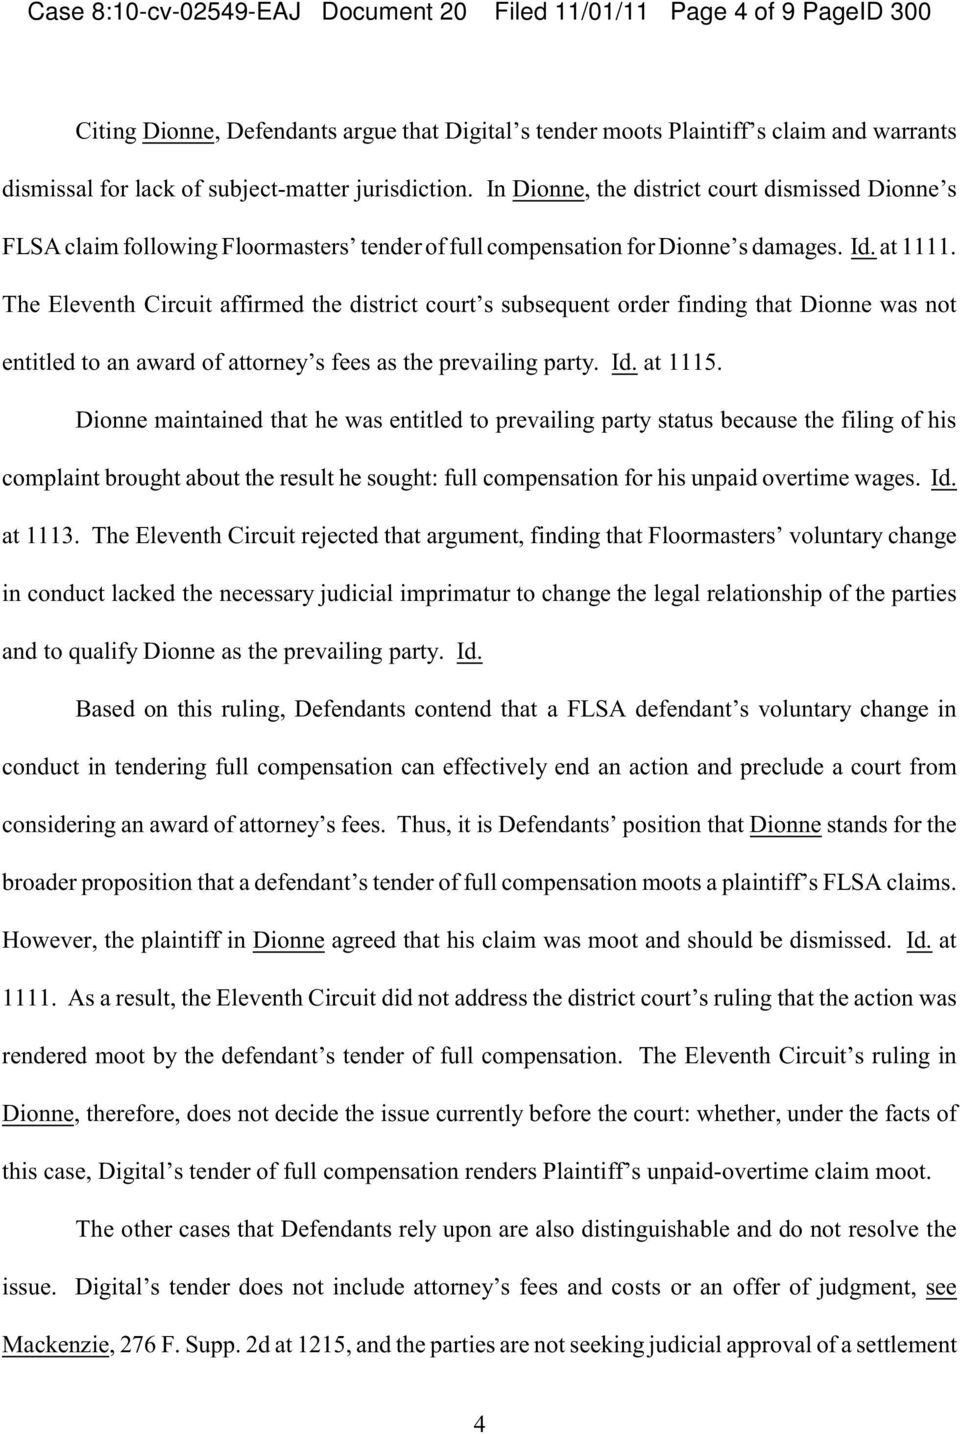 The Eleventh Circuit affirmed the district court s subsequent order finding that Dionne was not entitled to an award of attorney s fees as the prevailing party. Id. at 1115.